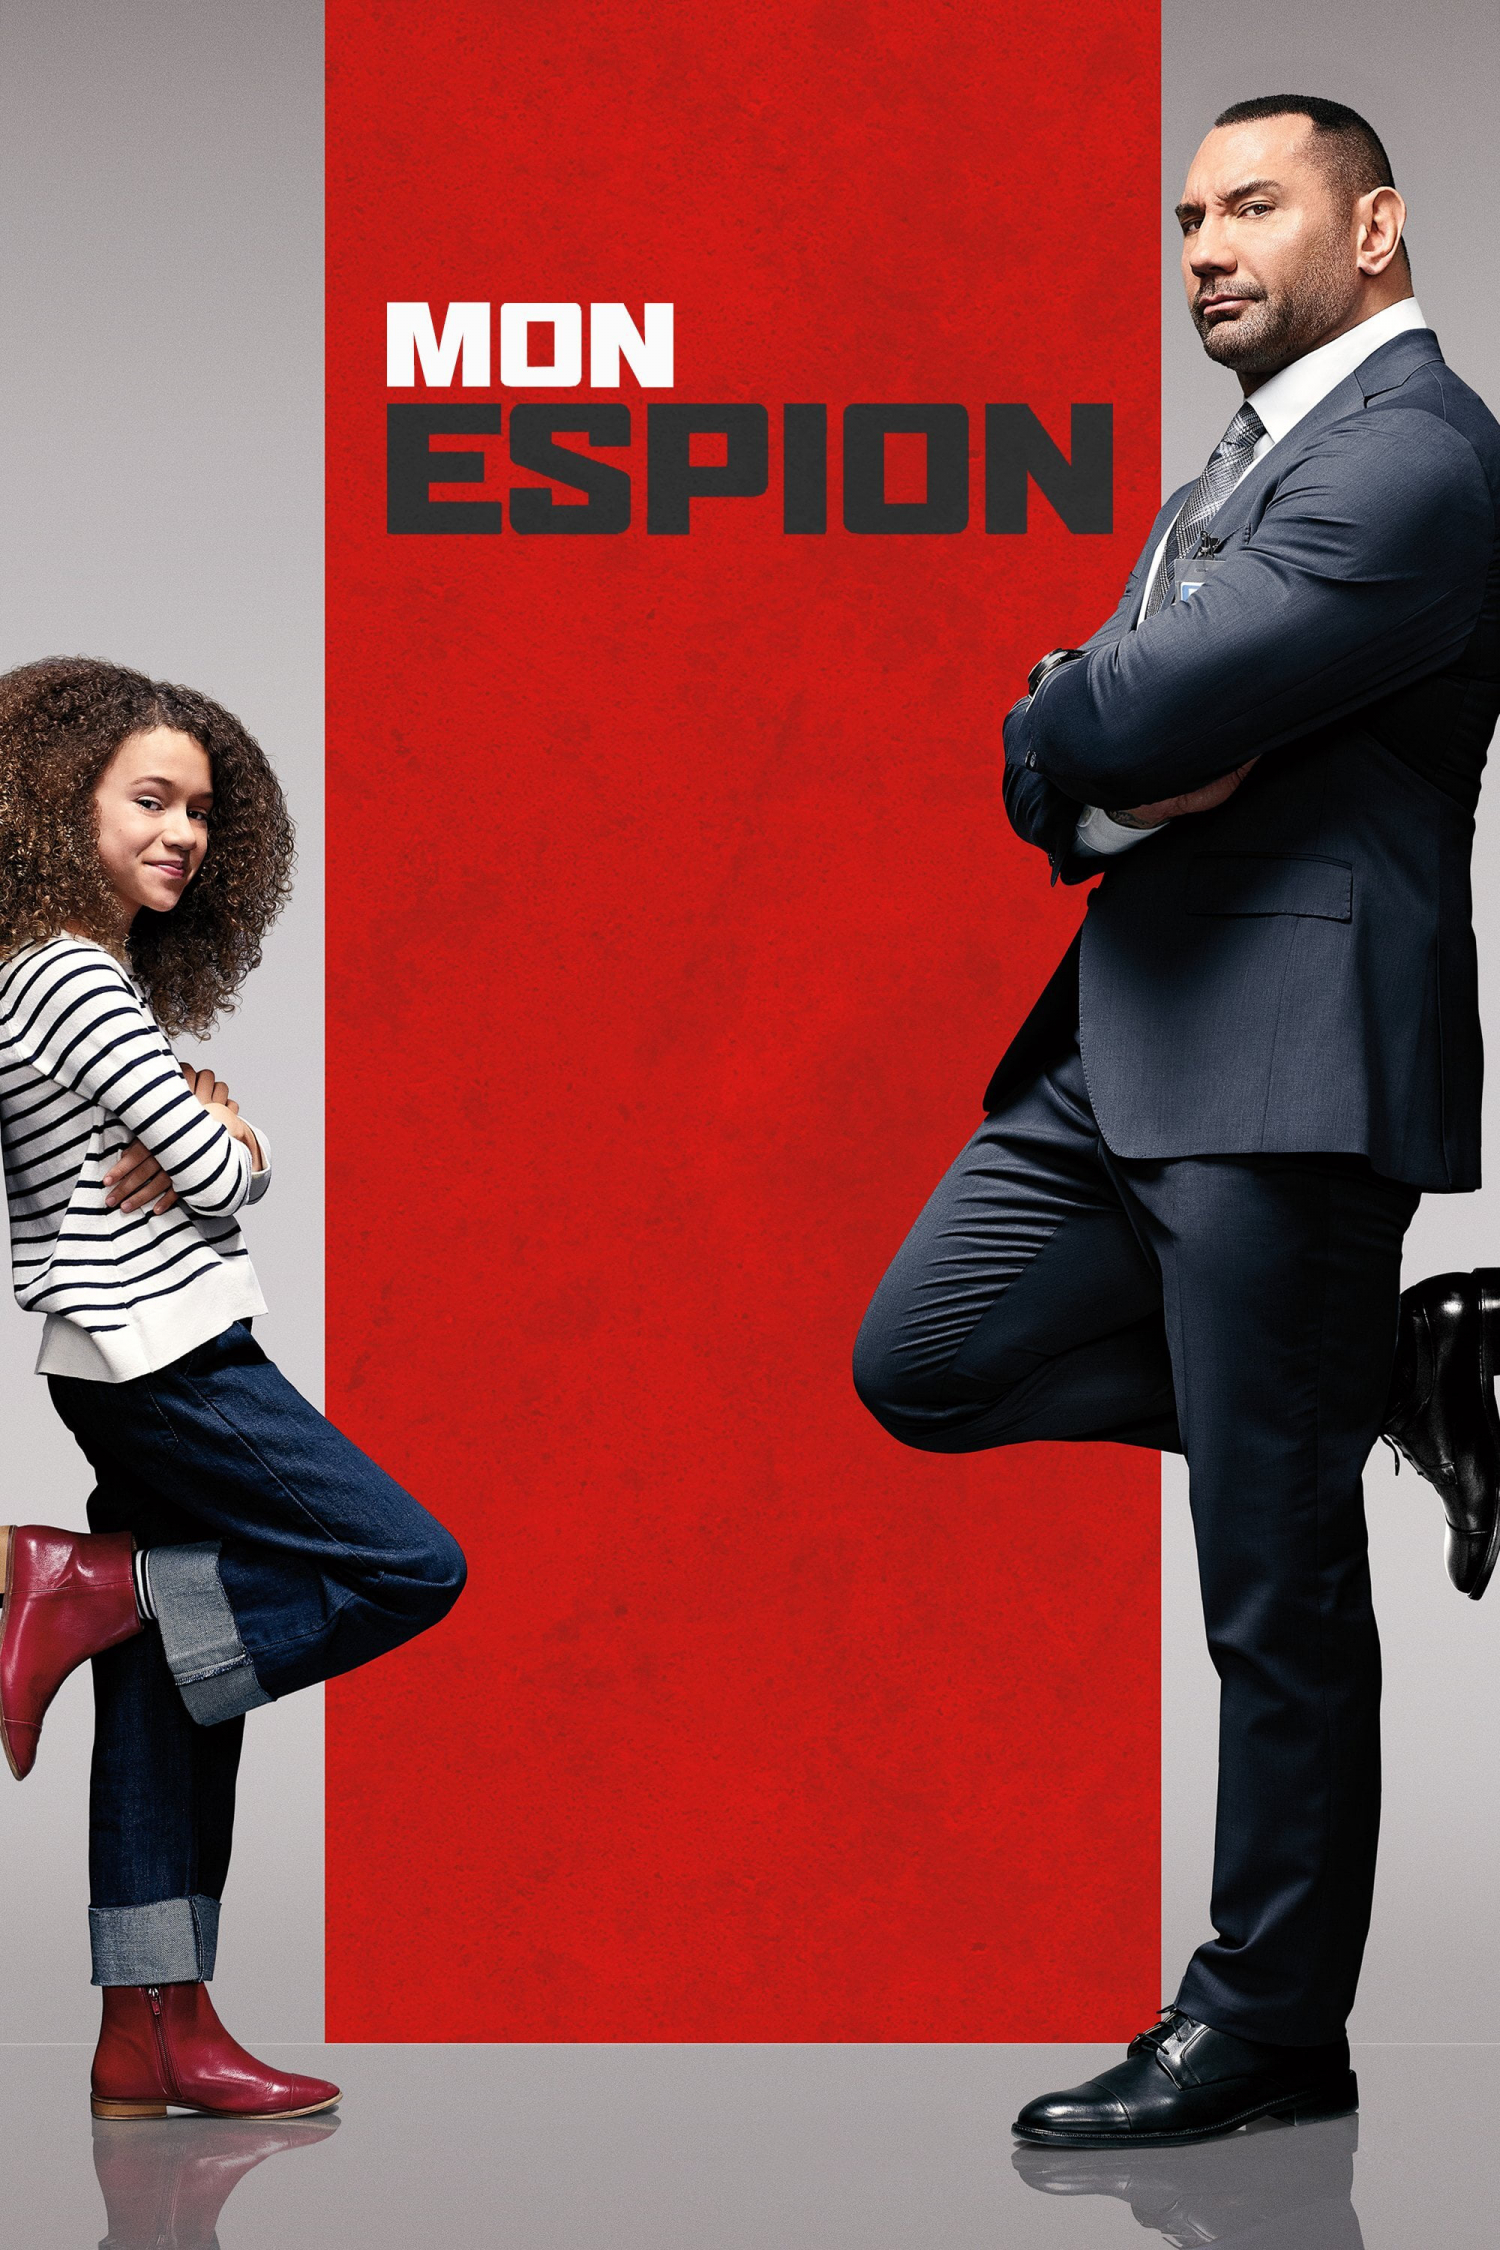 My Spy - Movie info and showtimes in Trinidad and Tobago